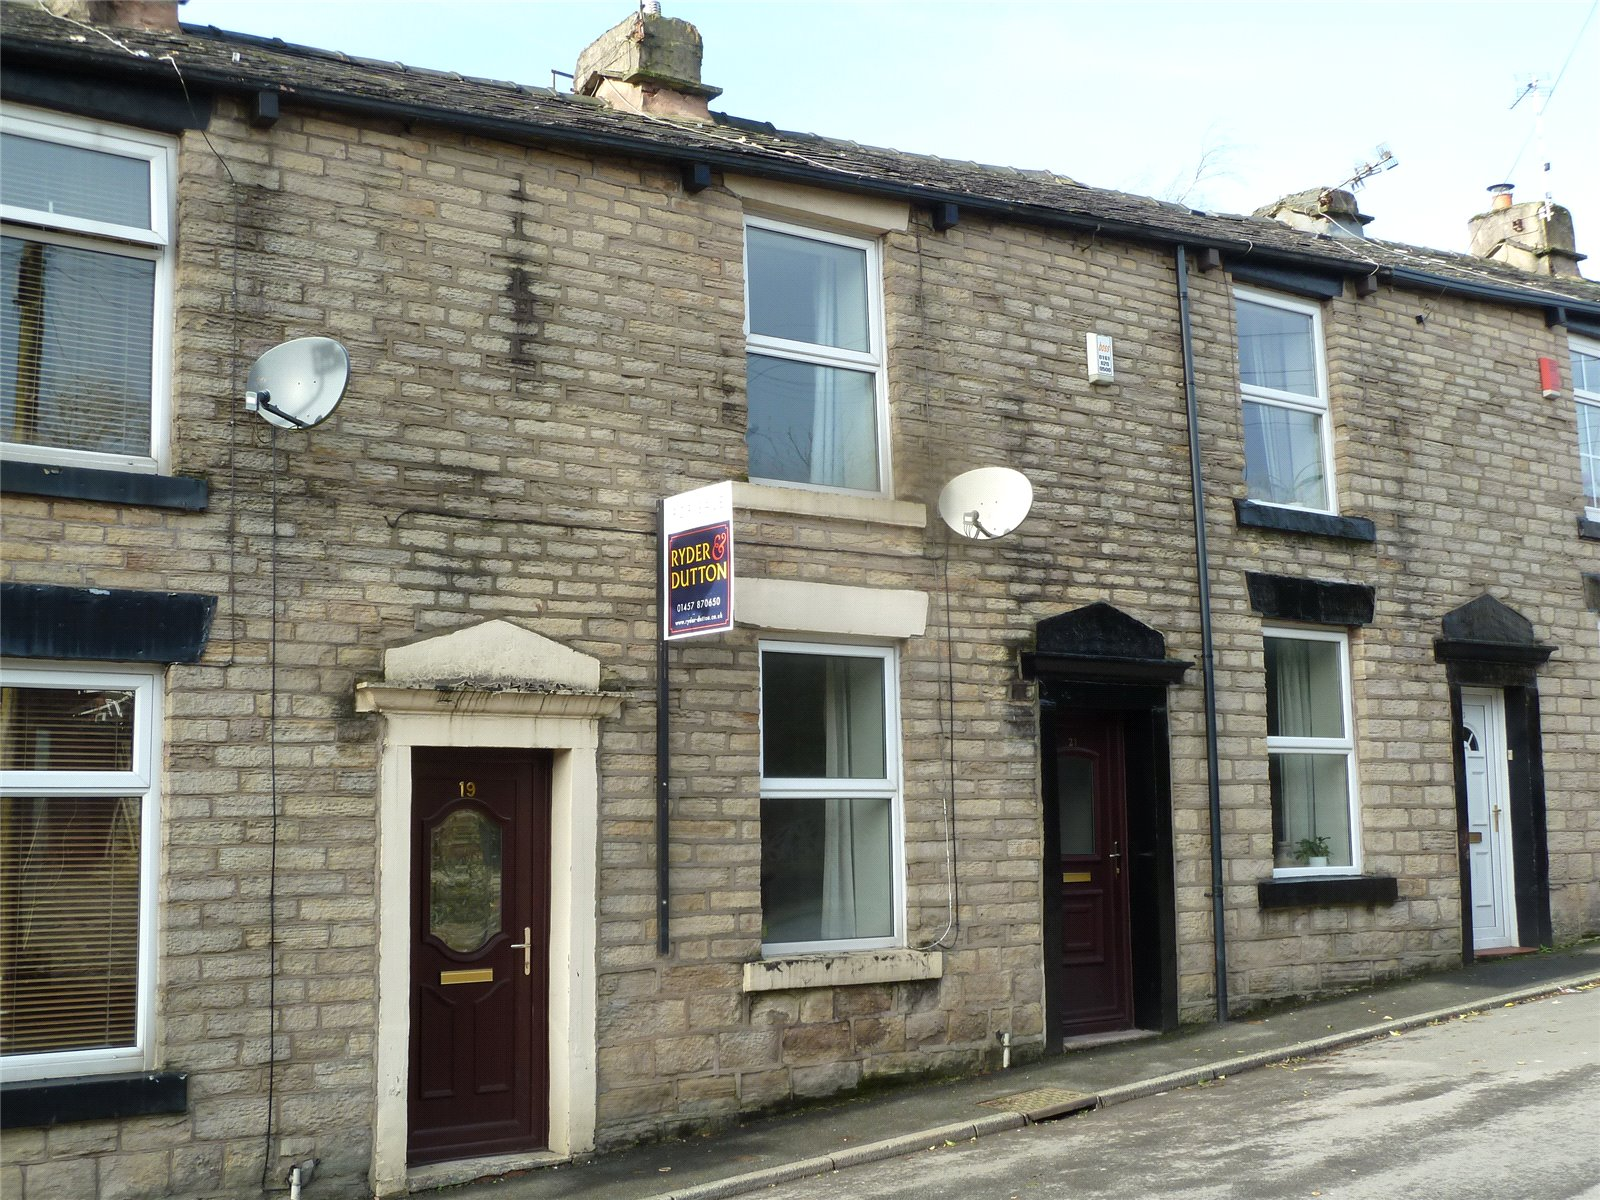 2 Bedrooms Terraced House for sale in Co-operative Street, Springhead, Saddleworth, OL4